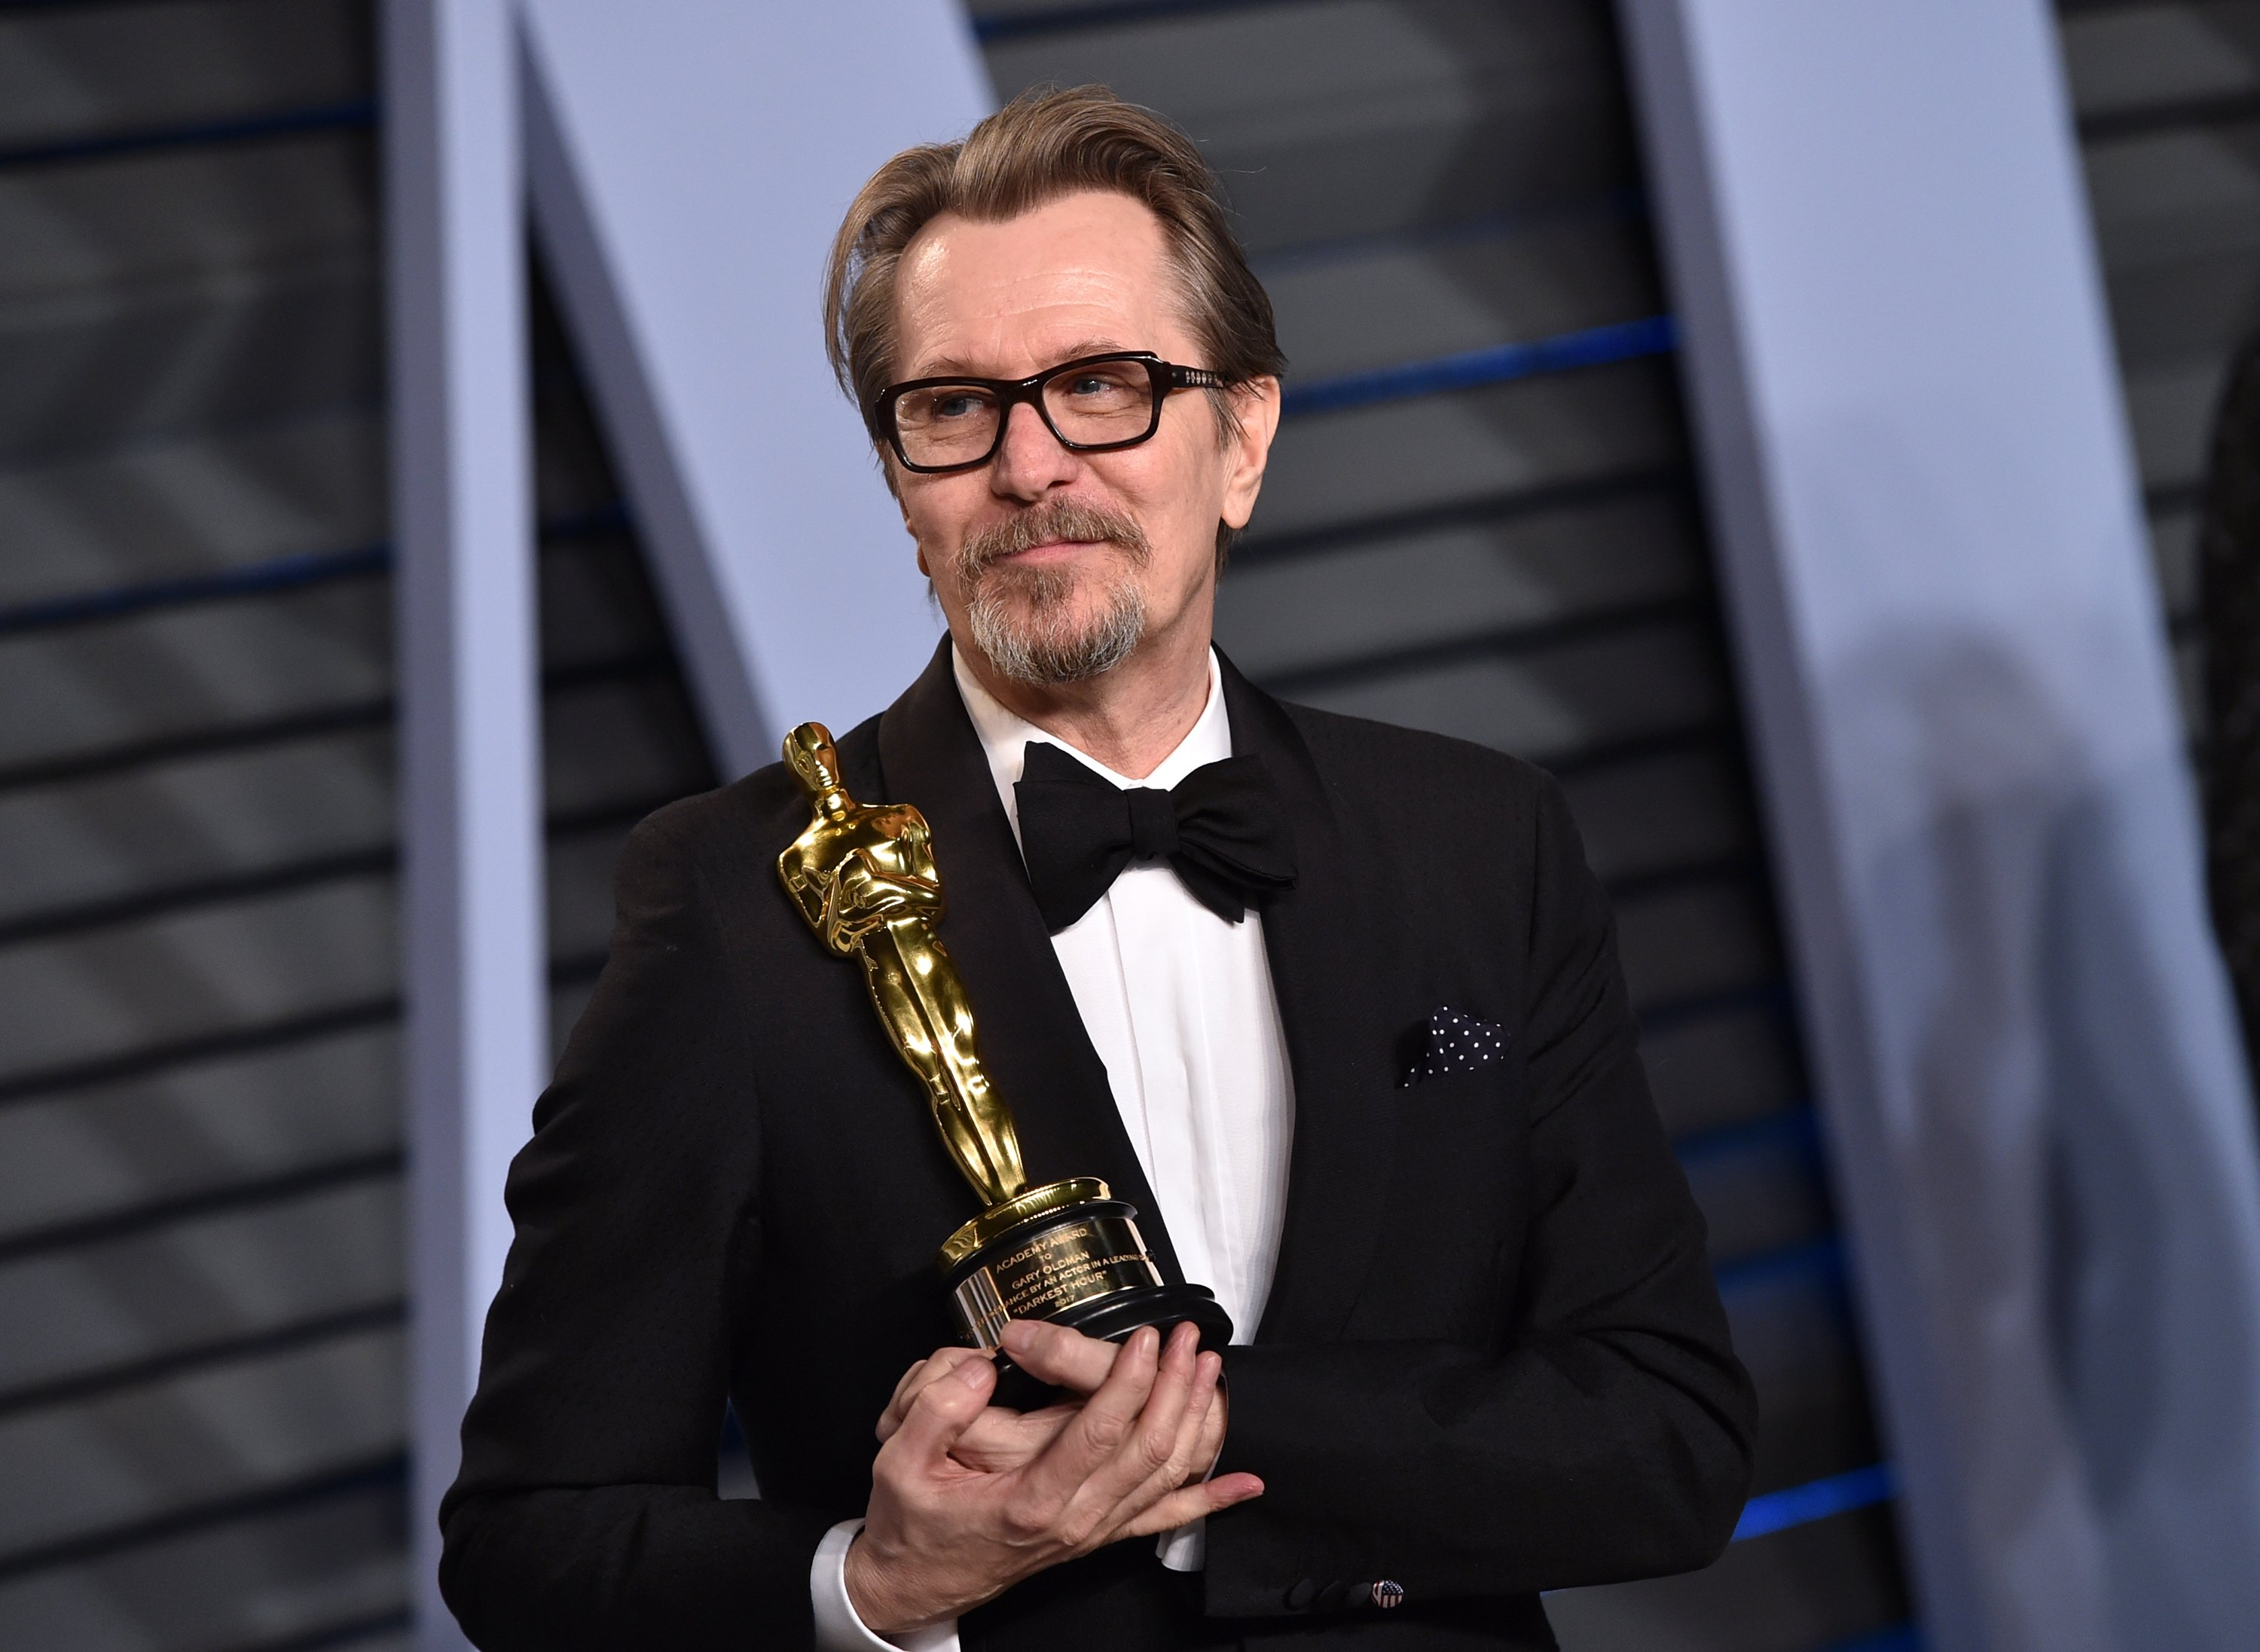 Gary Oldman Image Source: Getty Images.